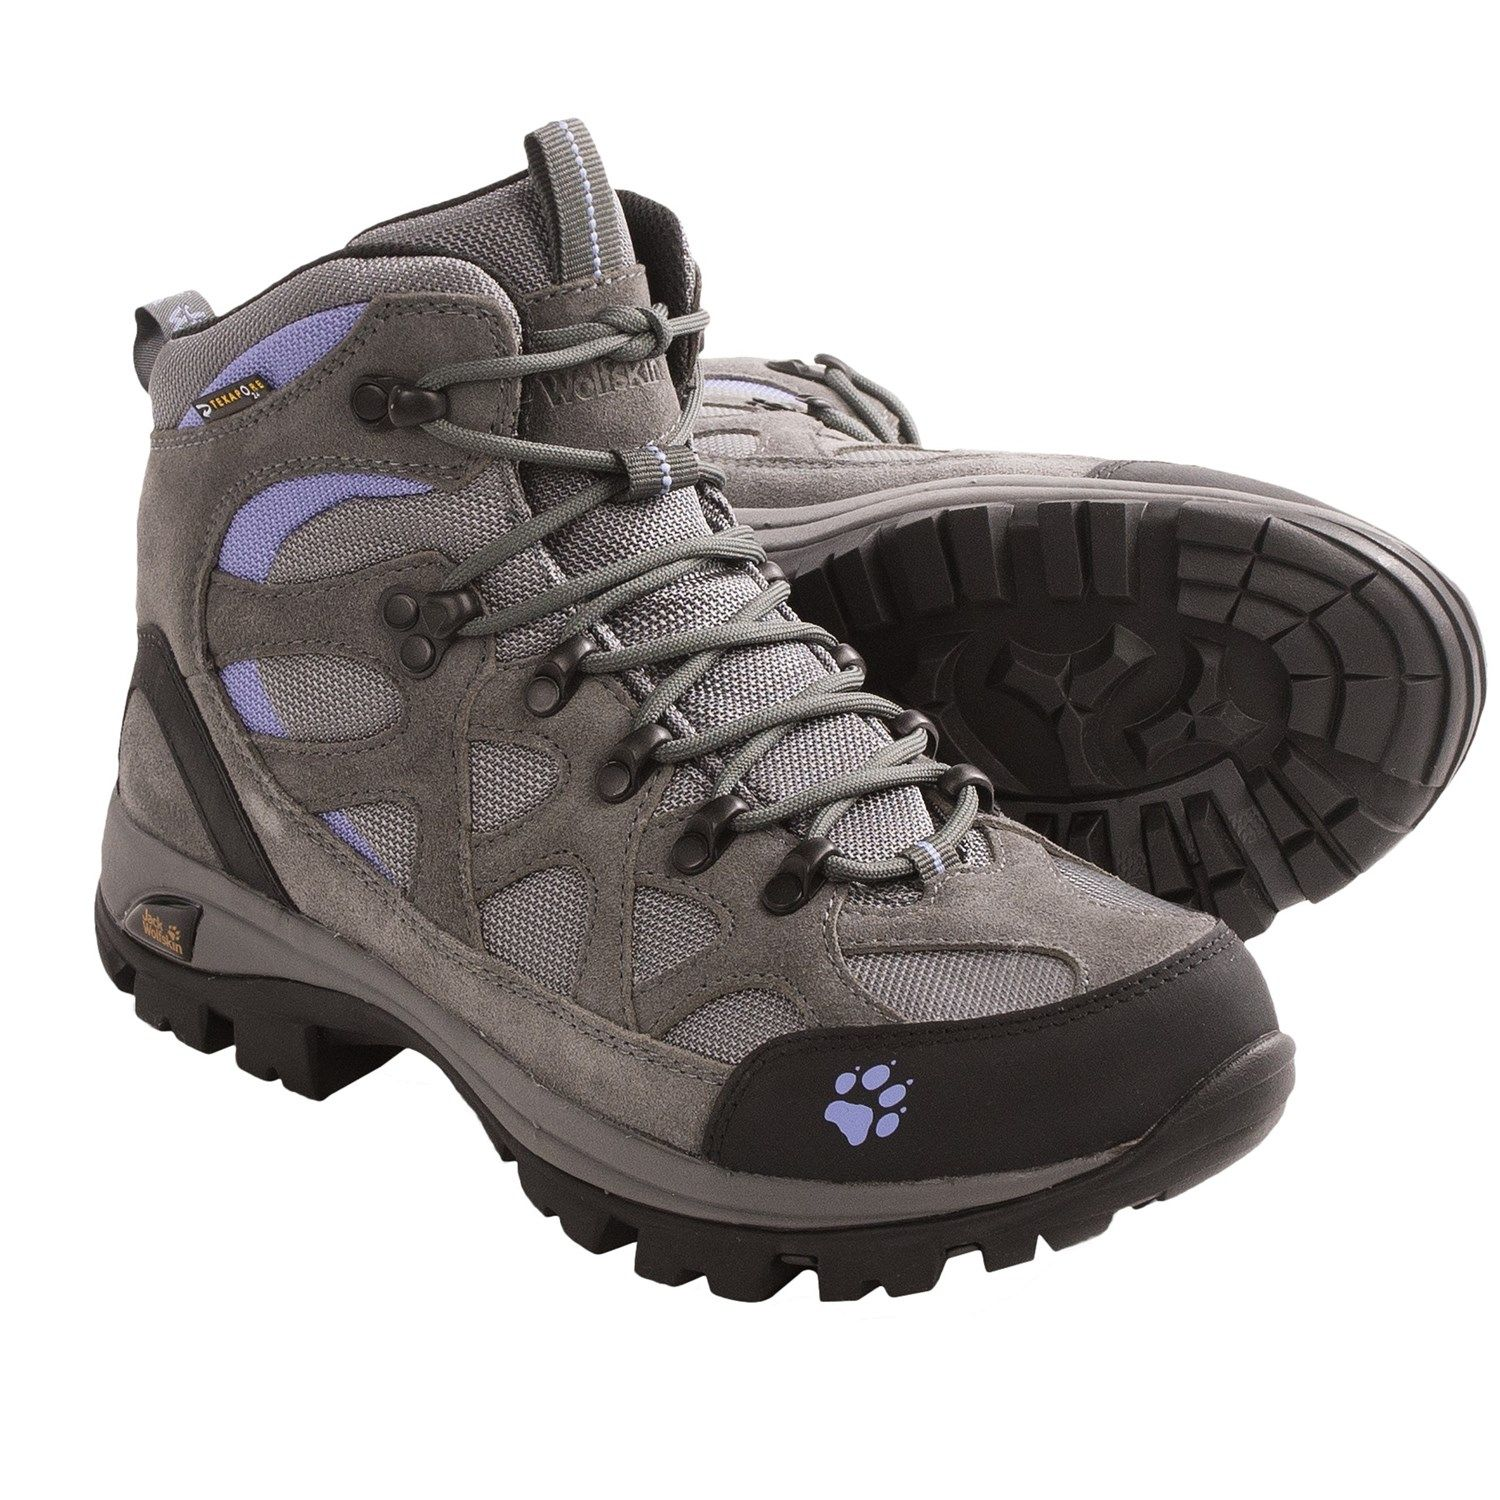 jack wolfskin all terrain texapore hiking boots. Black Bedroom Furniture Sets. Home Design Ideas